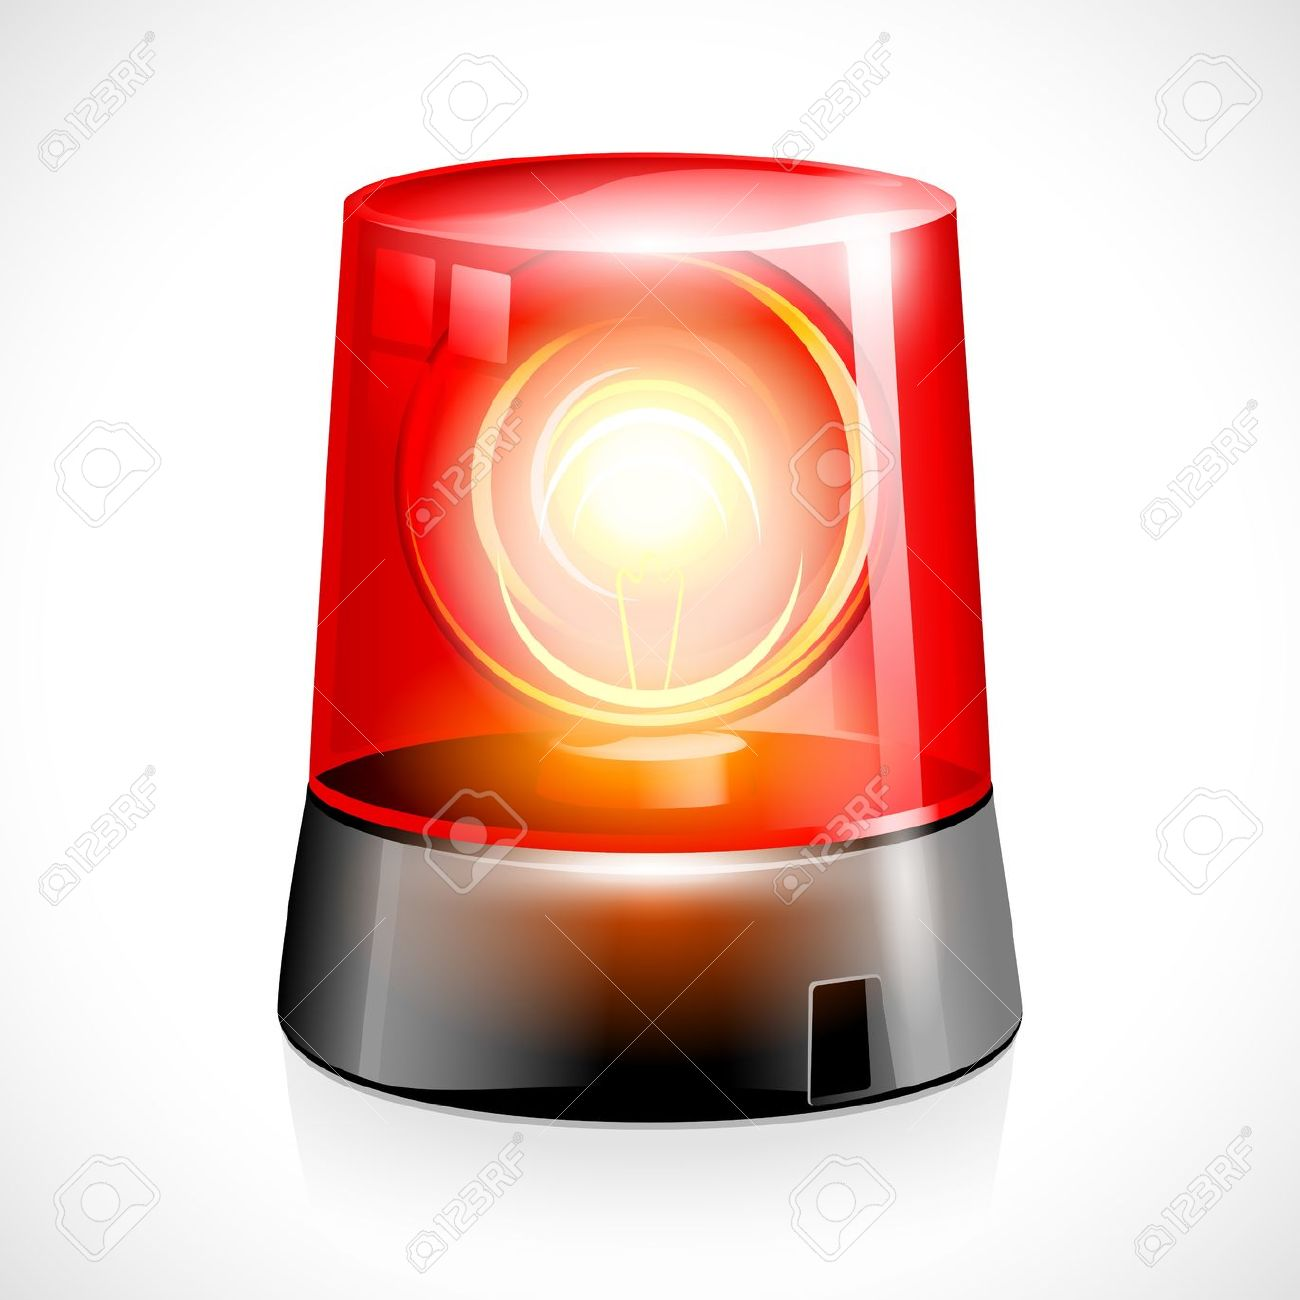 Clipart flashing lights graphic library download Clipart flashing red light - ClipartFest graphic library download